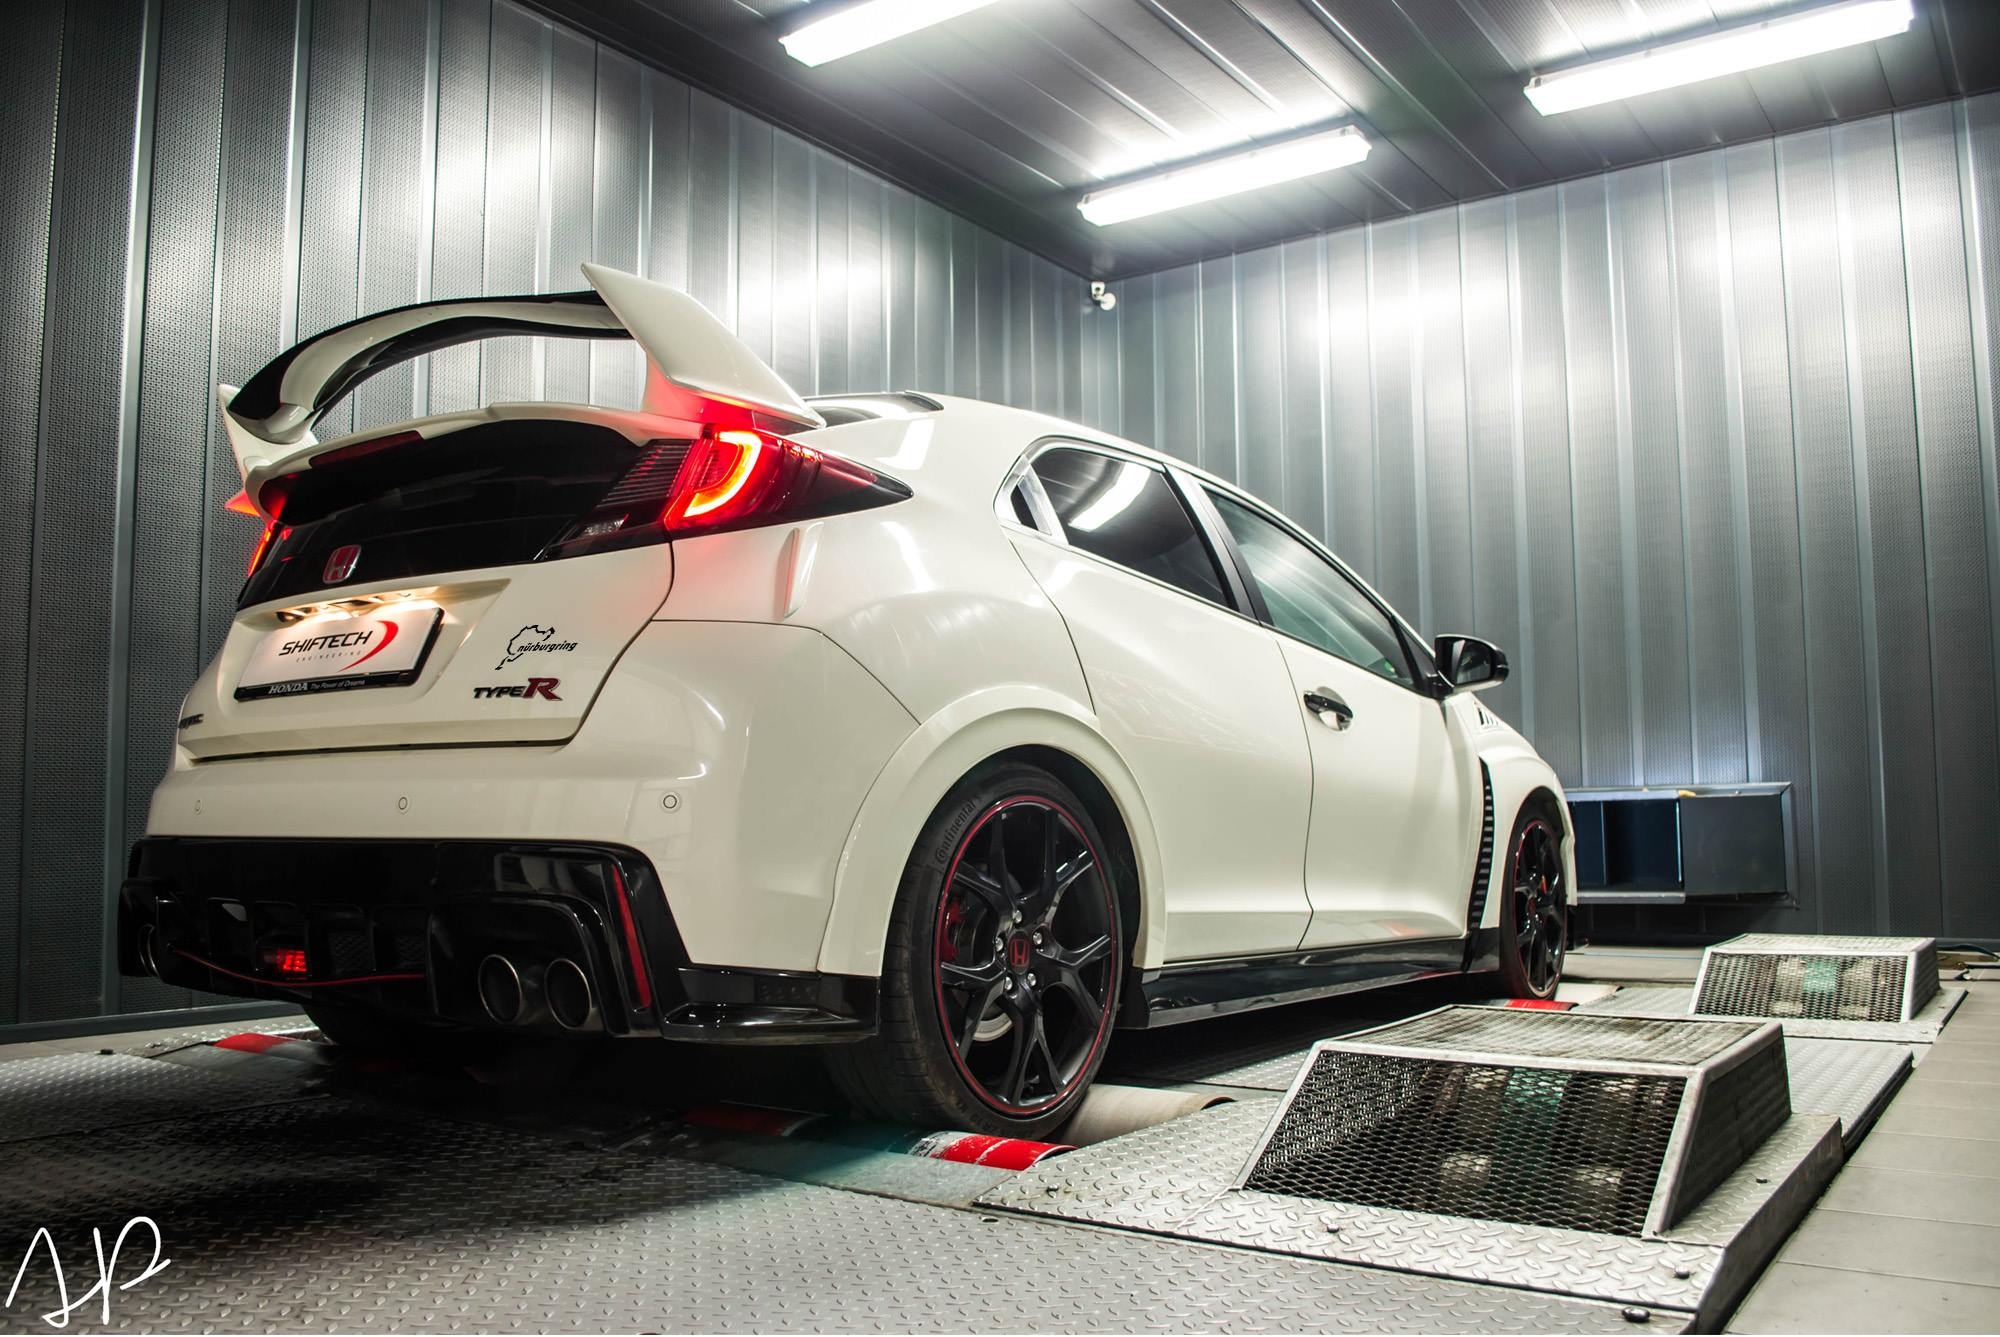 Honda Civic Type R Turbo Engine Tuned to 356 PS by ...